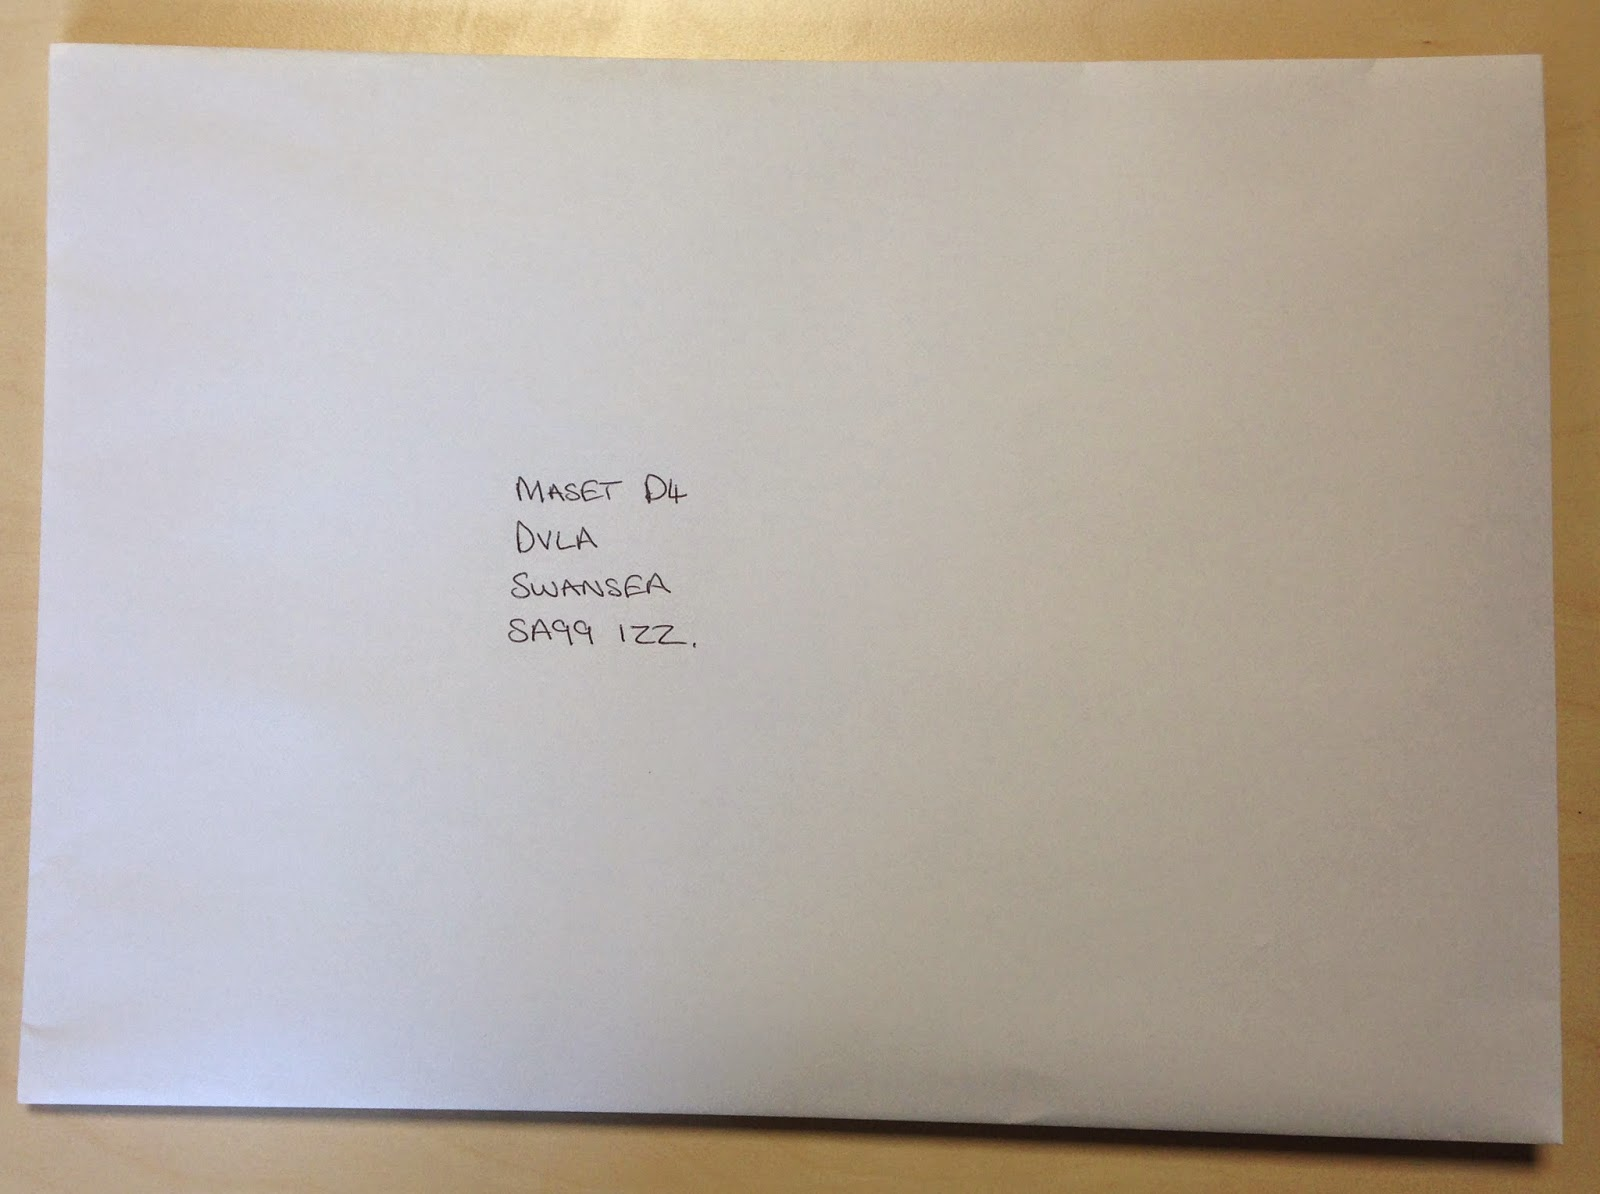 The envelope of documents addressed to the DVLA.